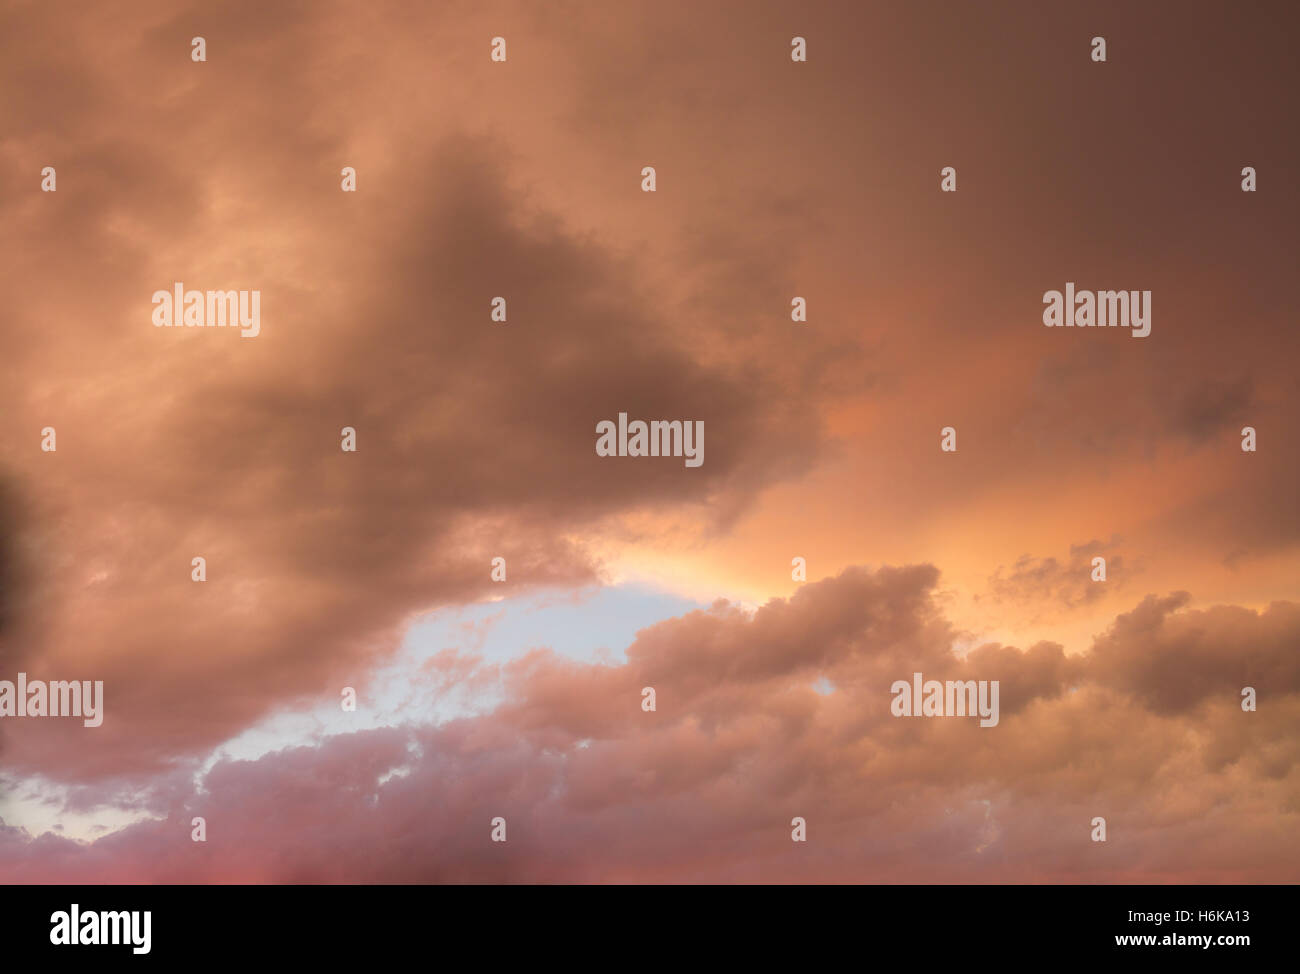 Colourful skyscape with versicolored clouds at sunset dusk - Stock Image